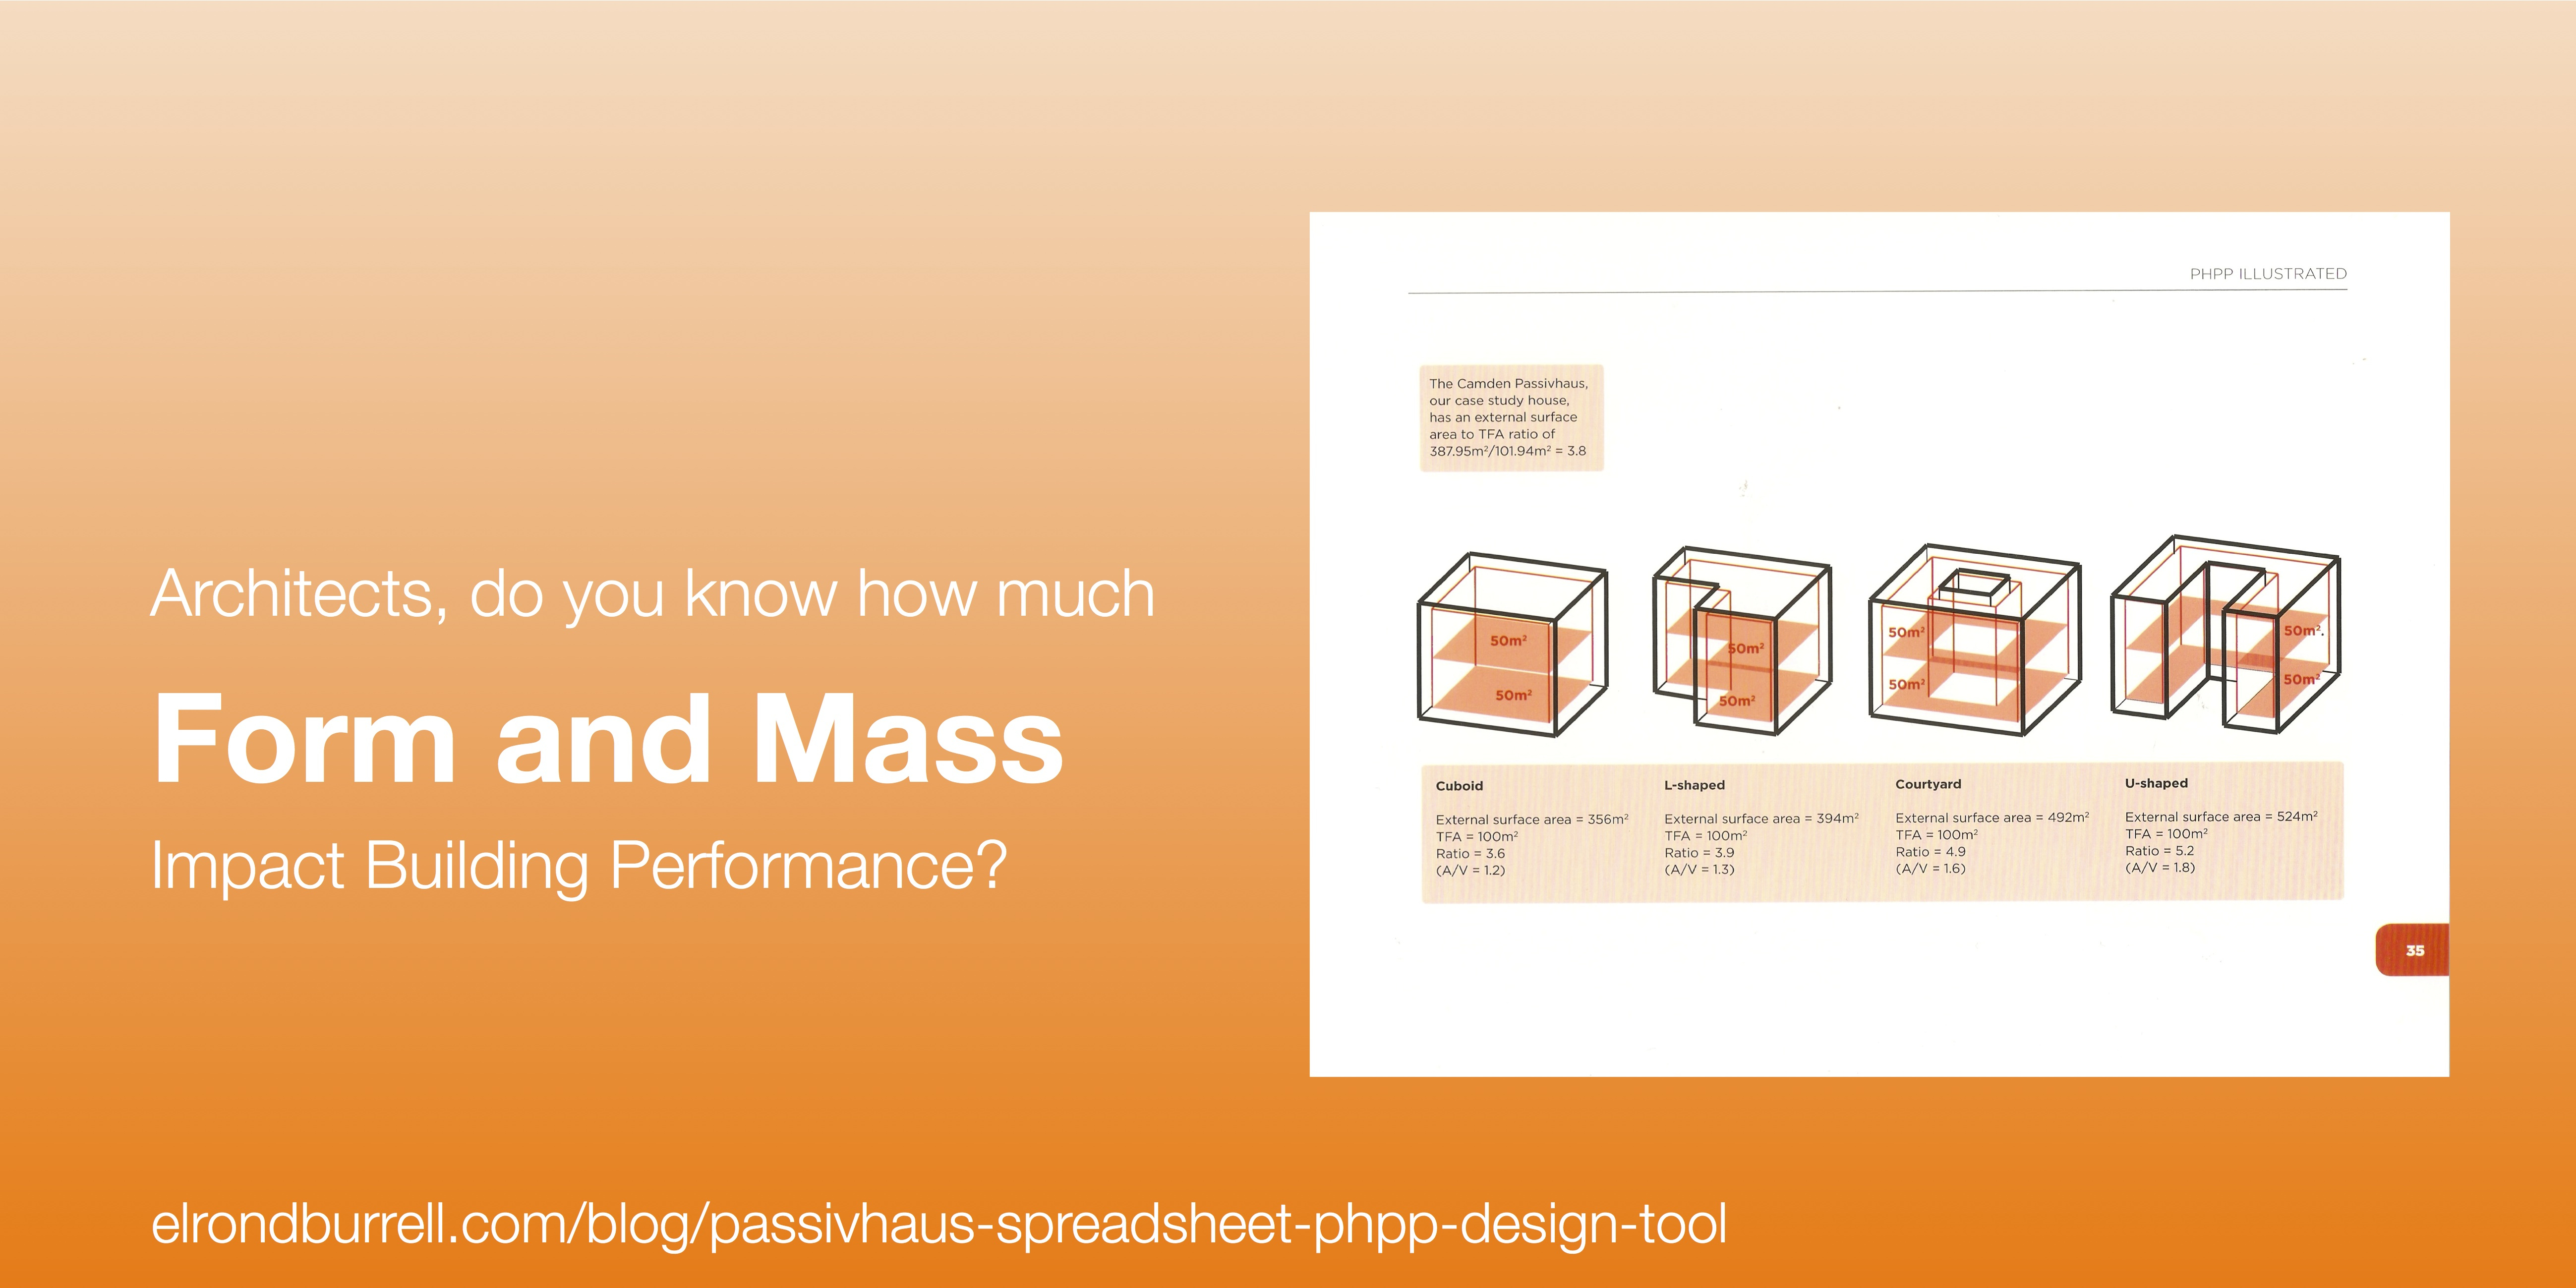 Spreadsheet Designers For How To Use The Passivhaus Spreadsheet Phpp As A Design Tool